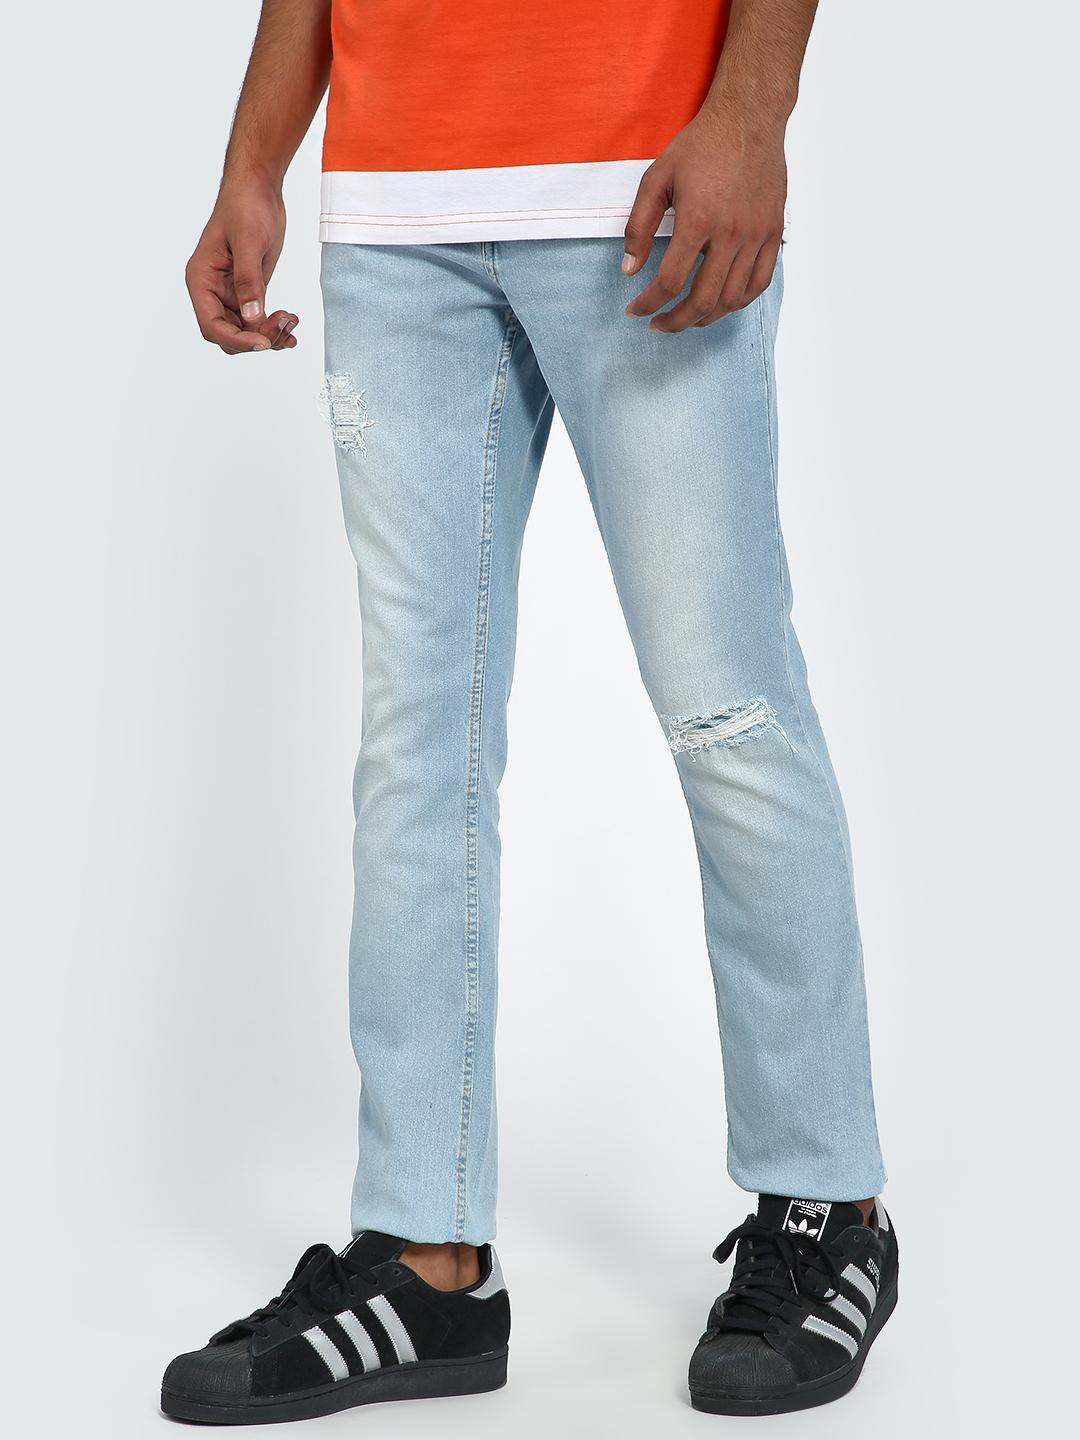 Blue Saint Light Blue Light Wash Distressed Slim Jeans 1